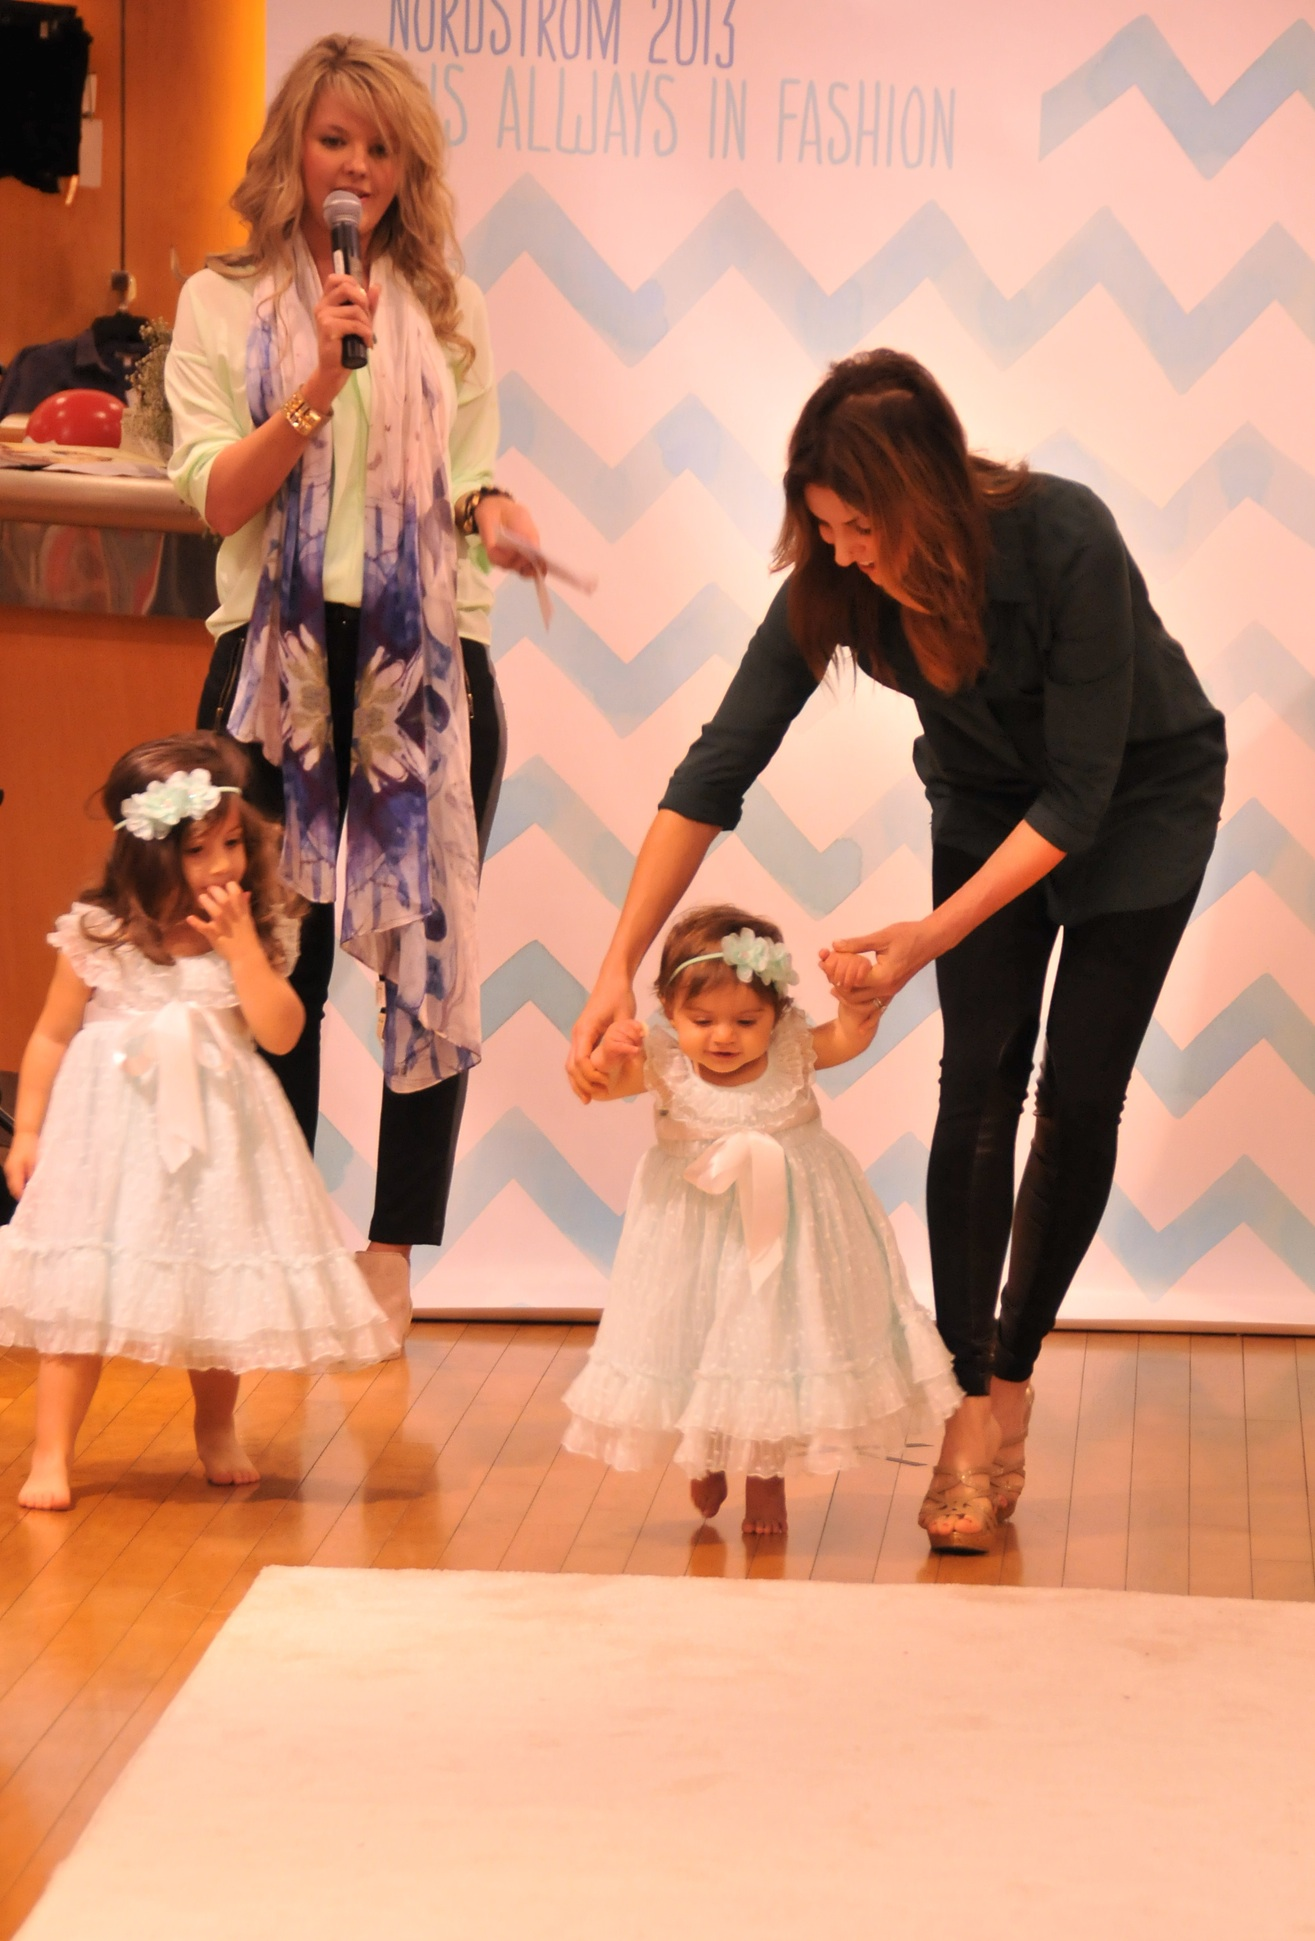 nordstrom_childrens_fashion_show_2013_jill_simonian